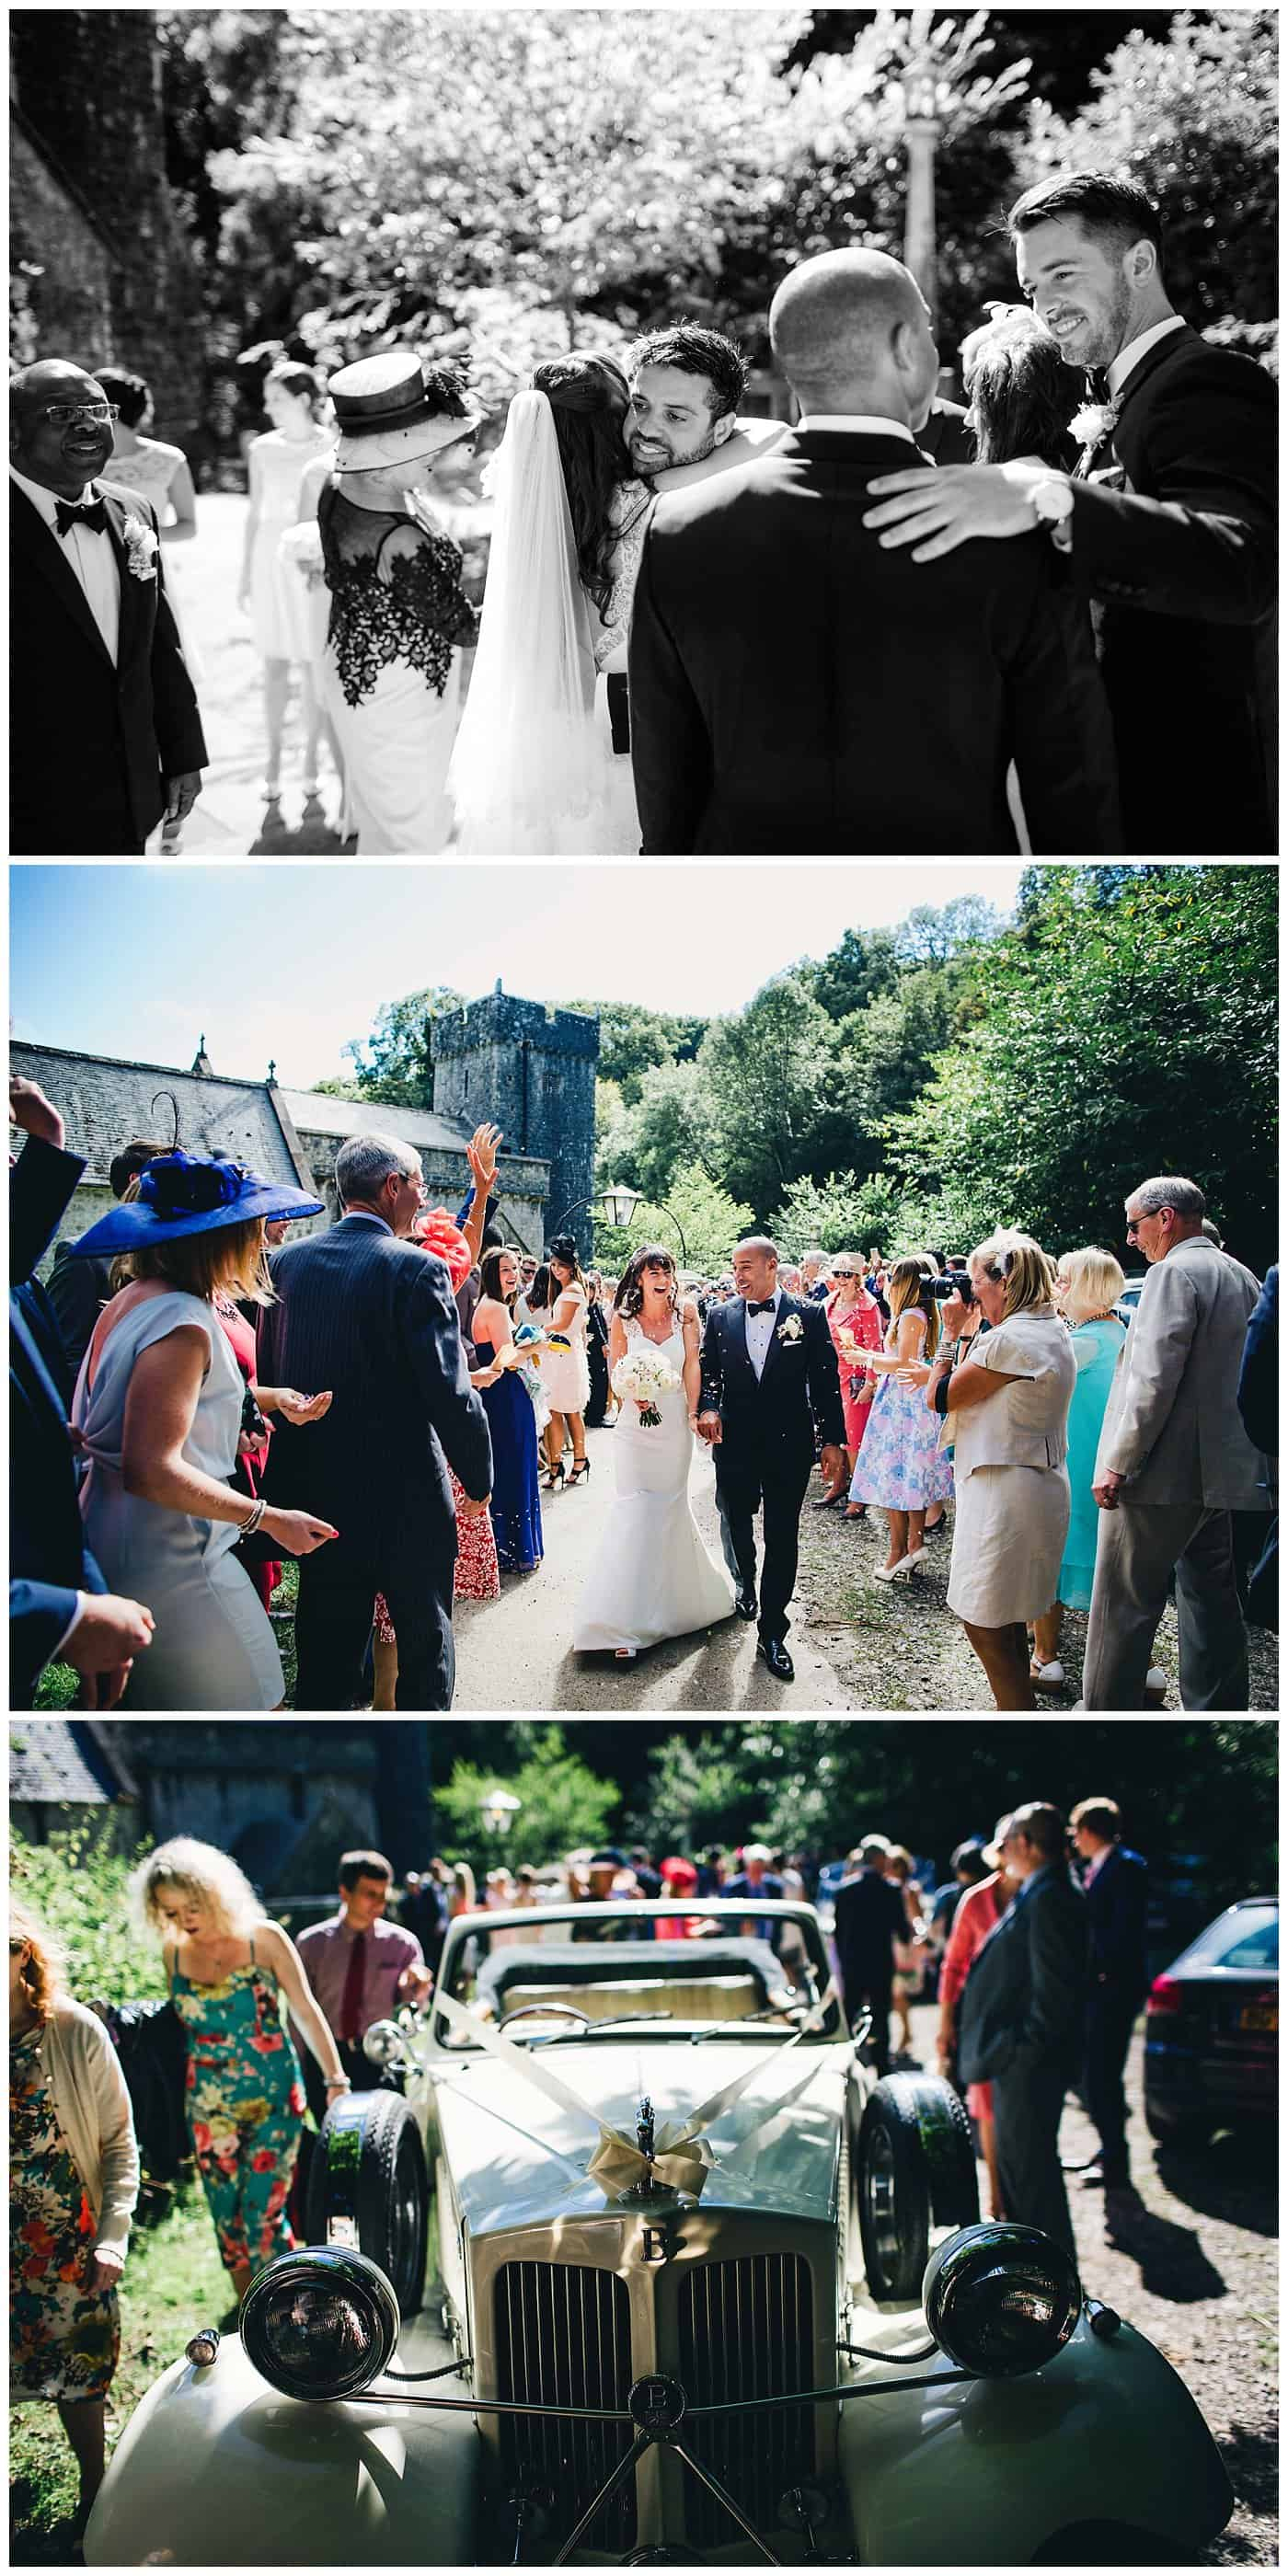 ST DONAT'S CASTLE WEDDING PICTURES